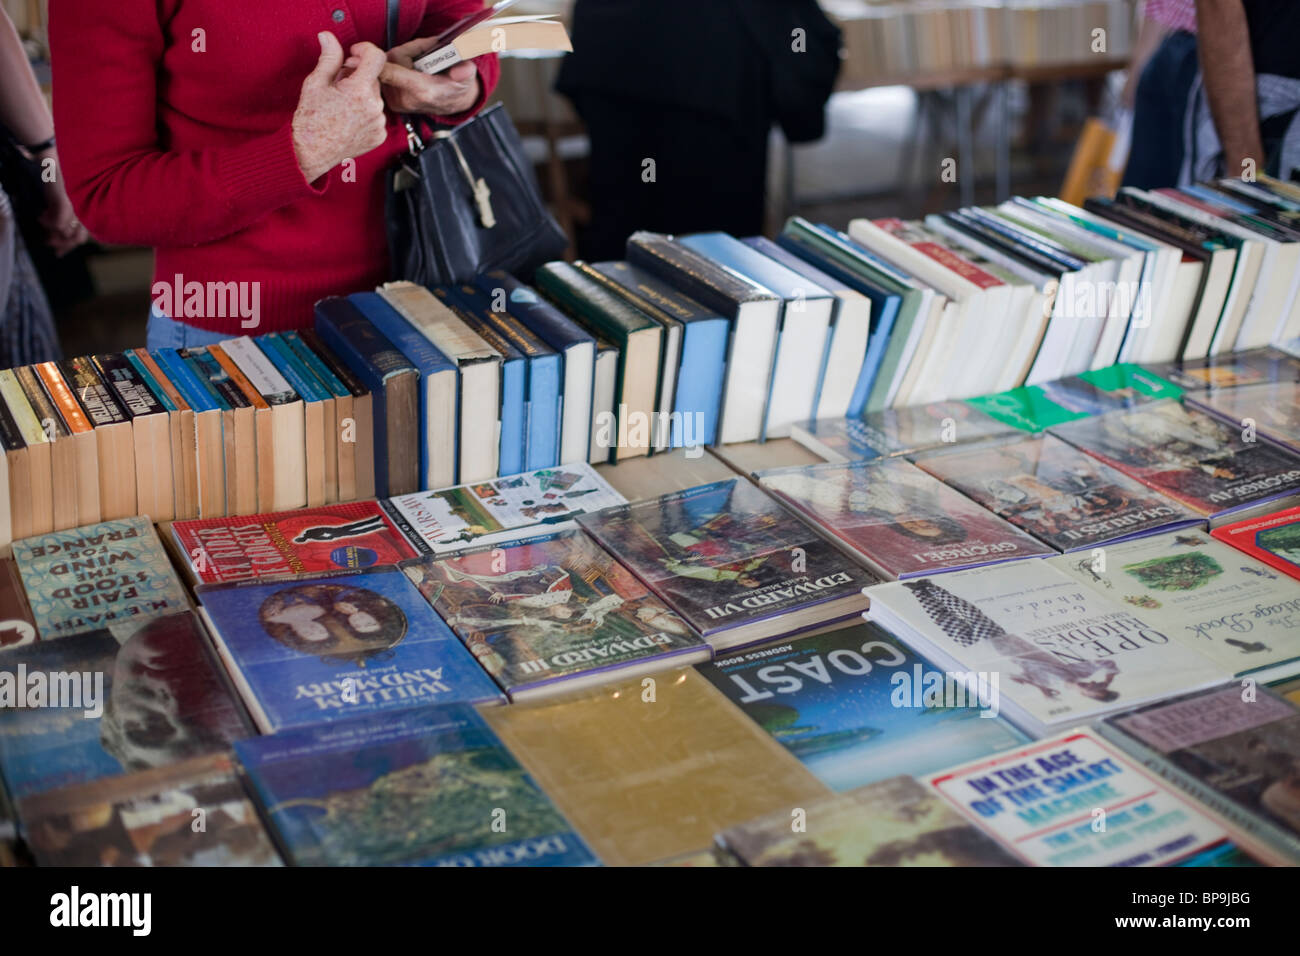 A lady browses a stall selling second hand books on the South Bank of the Thames, London. - Stock Image